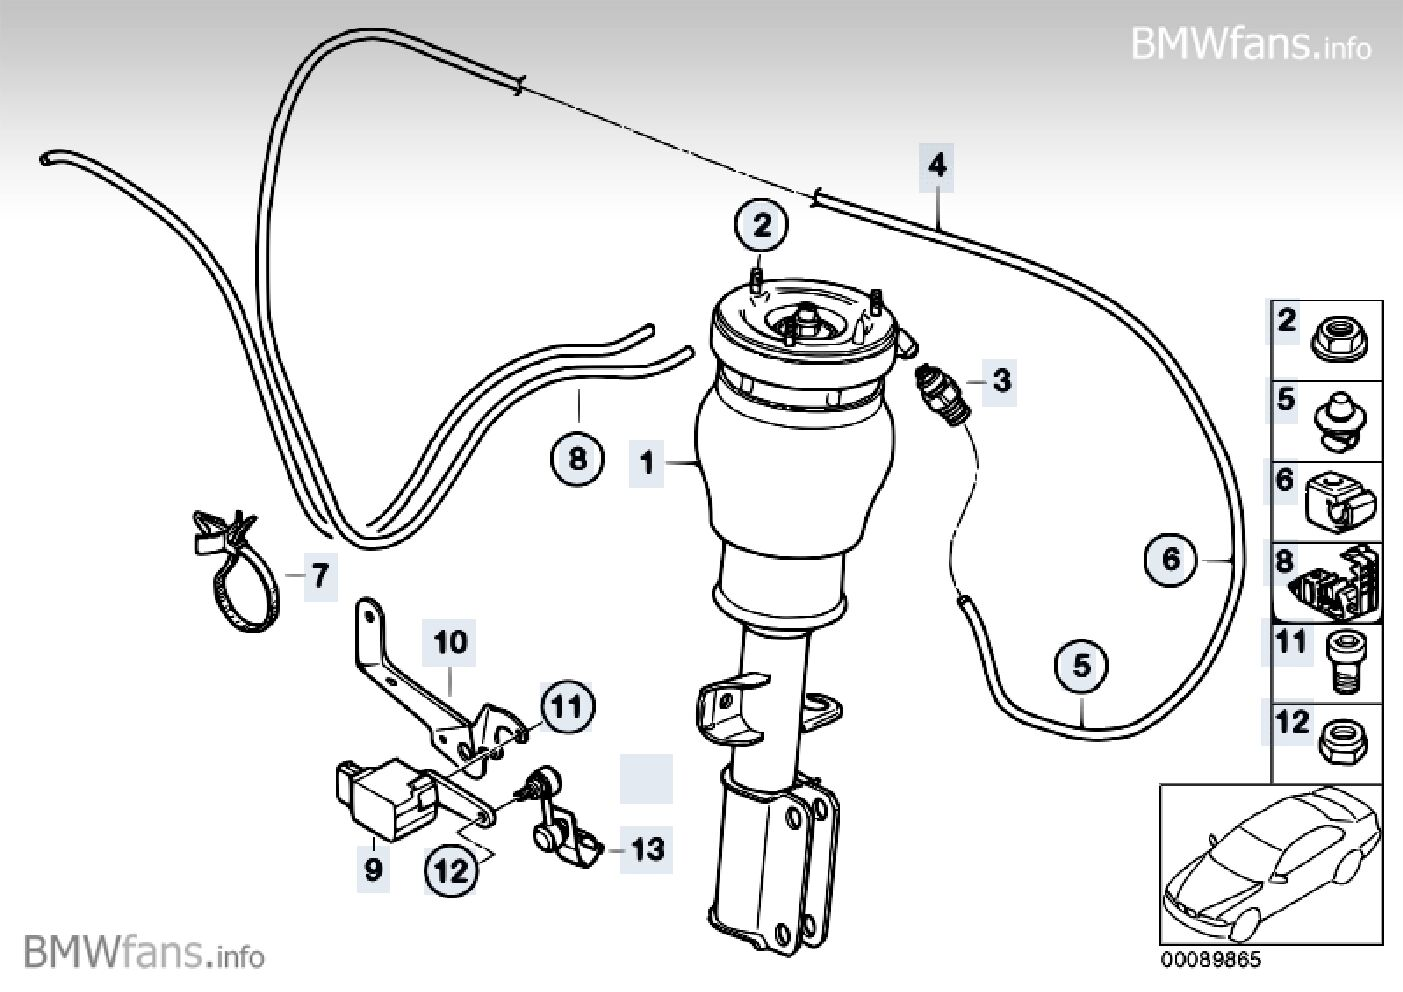 2004 bmw 325i engine diagram with Bmw F 22 Suspension Diagram on 0twrc 99 Ford Explorer Eddie Bauer Fan Speed Climate Control System moreover 02 BASICS Replacing Your Drive Belt mobile moreover 2004 Mini Cooper S Fuel Filter in addition 99 Stratus Camshaft Location furthermore 2007 Peterbilt Headlight Wiring Diagram.